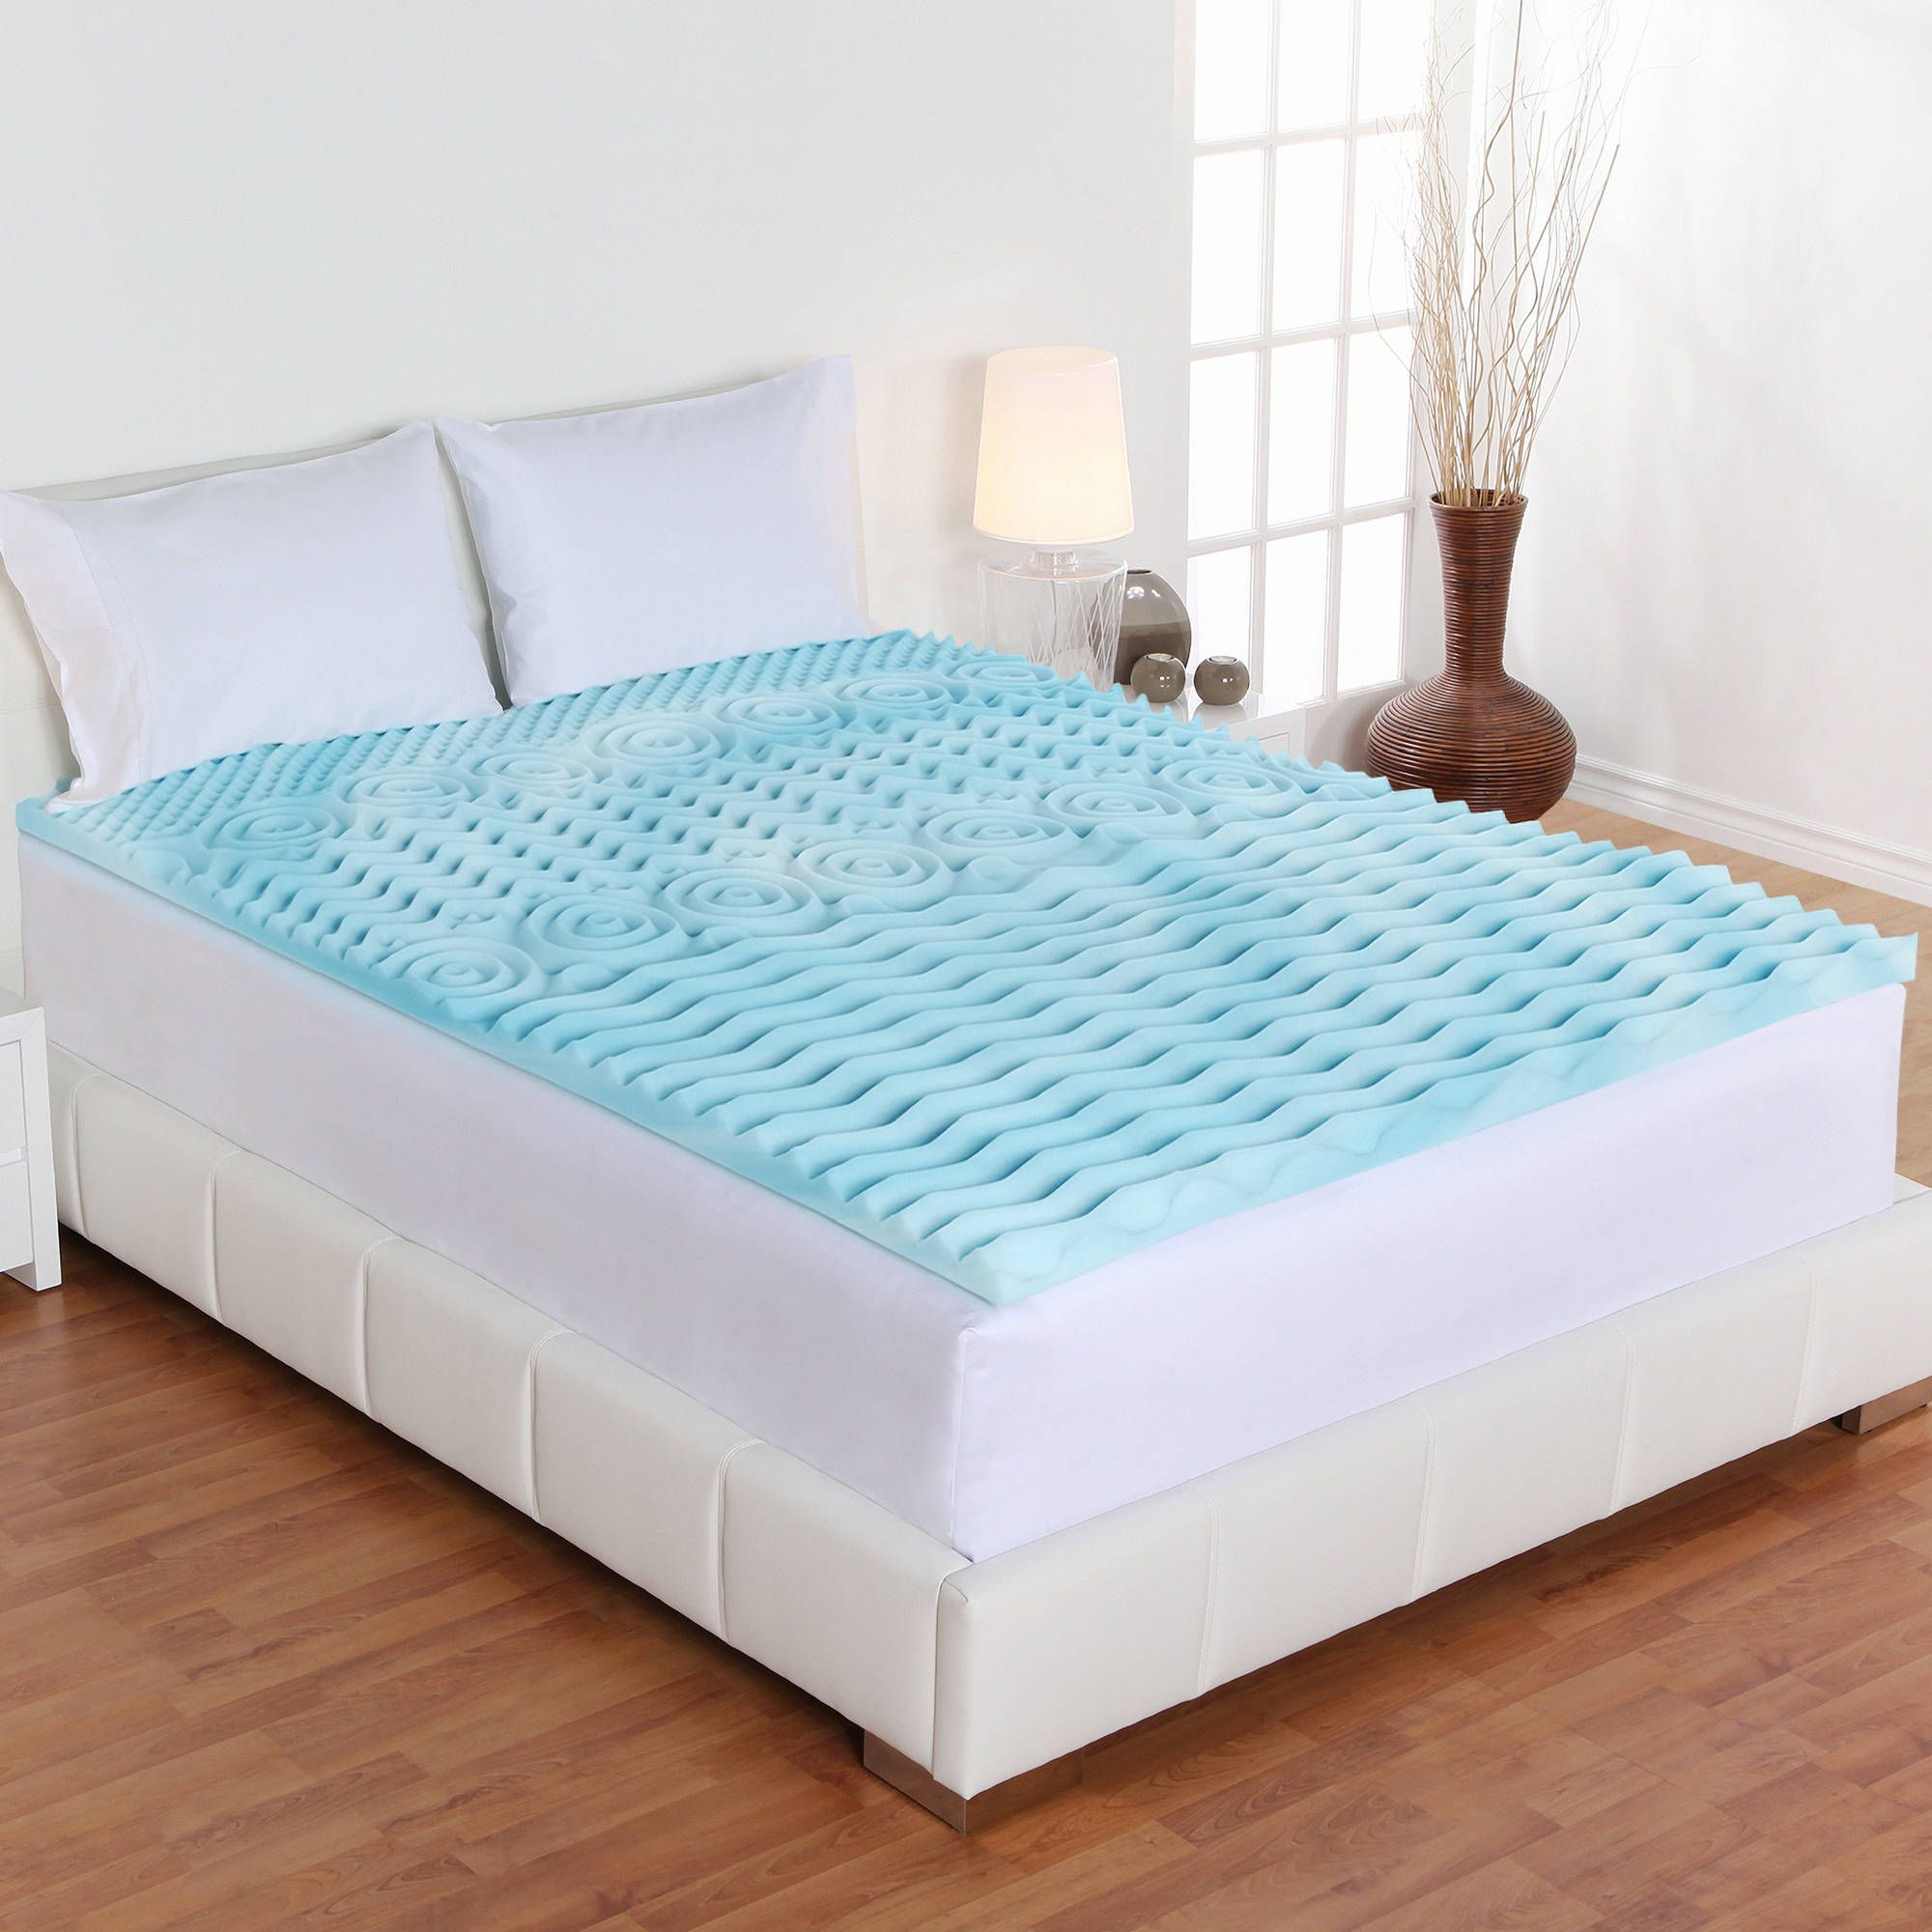 s timothy furniture home buy fred place decor mattresses best to mattress bedroom